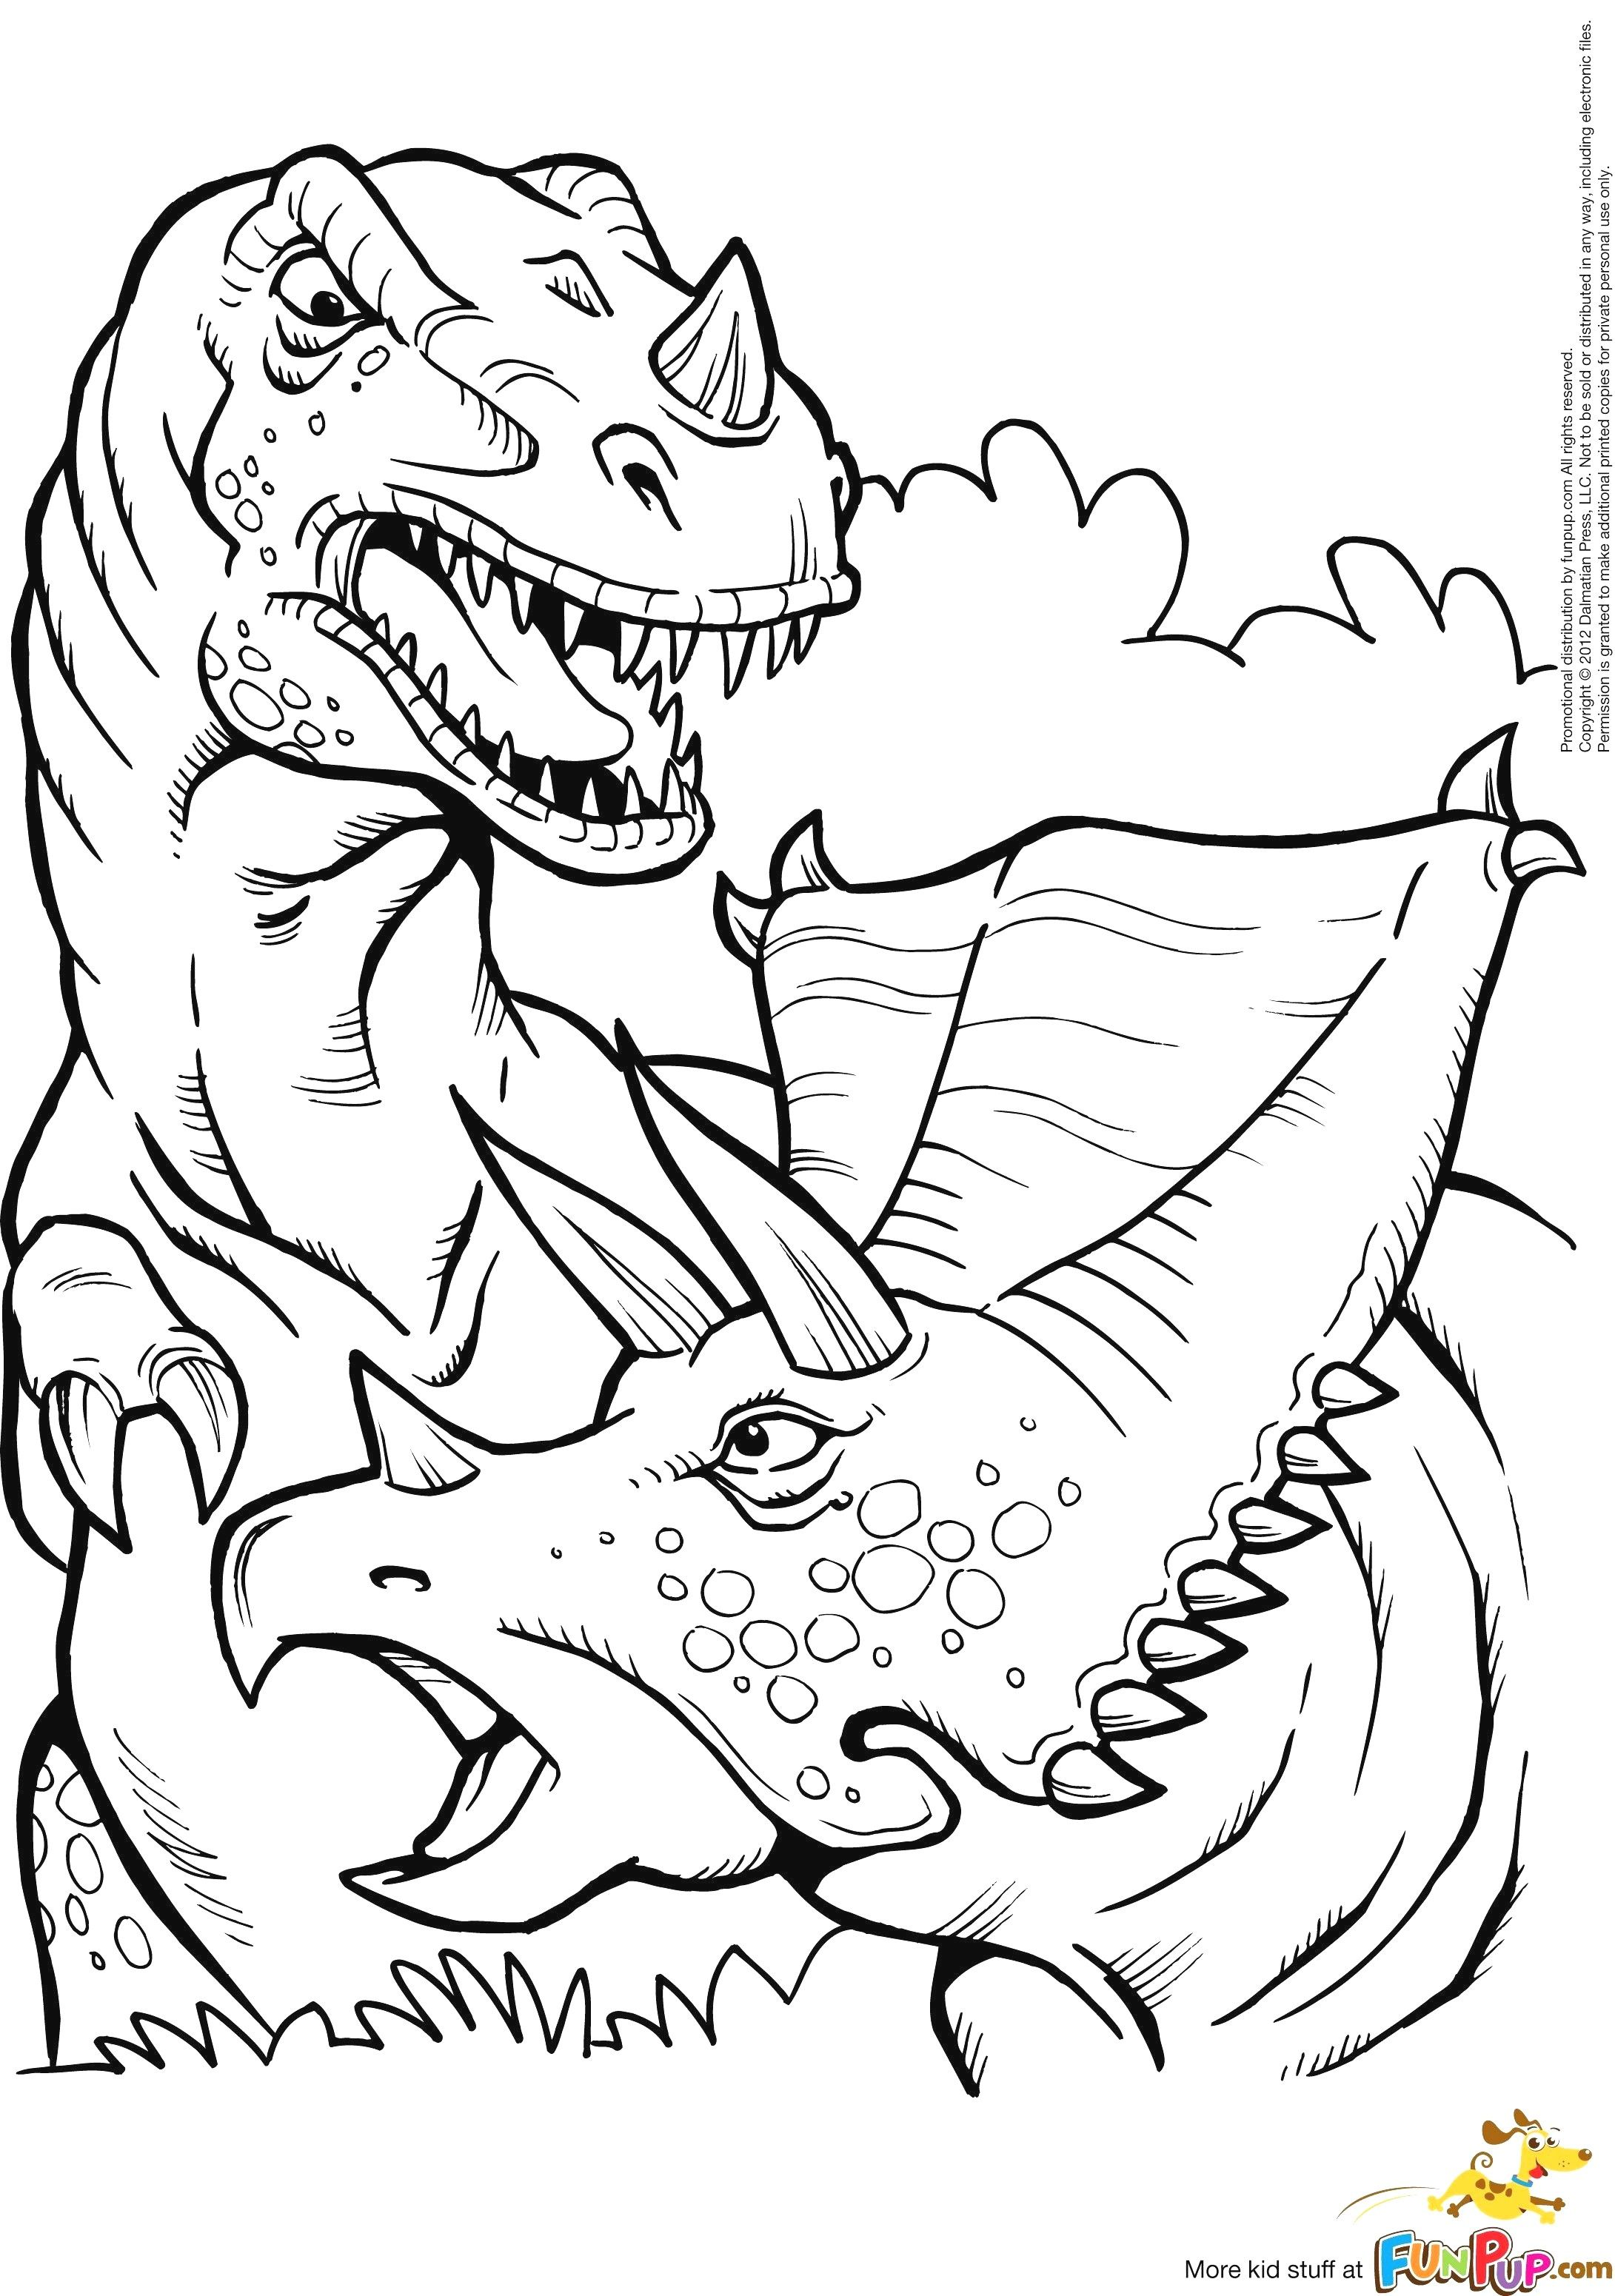 Free Coloring Pages Dinosaurs Creative Free Coloring Pages Of